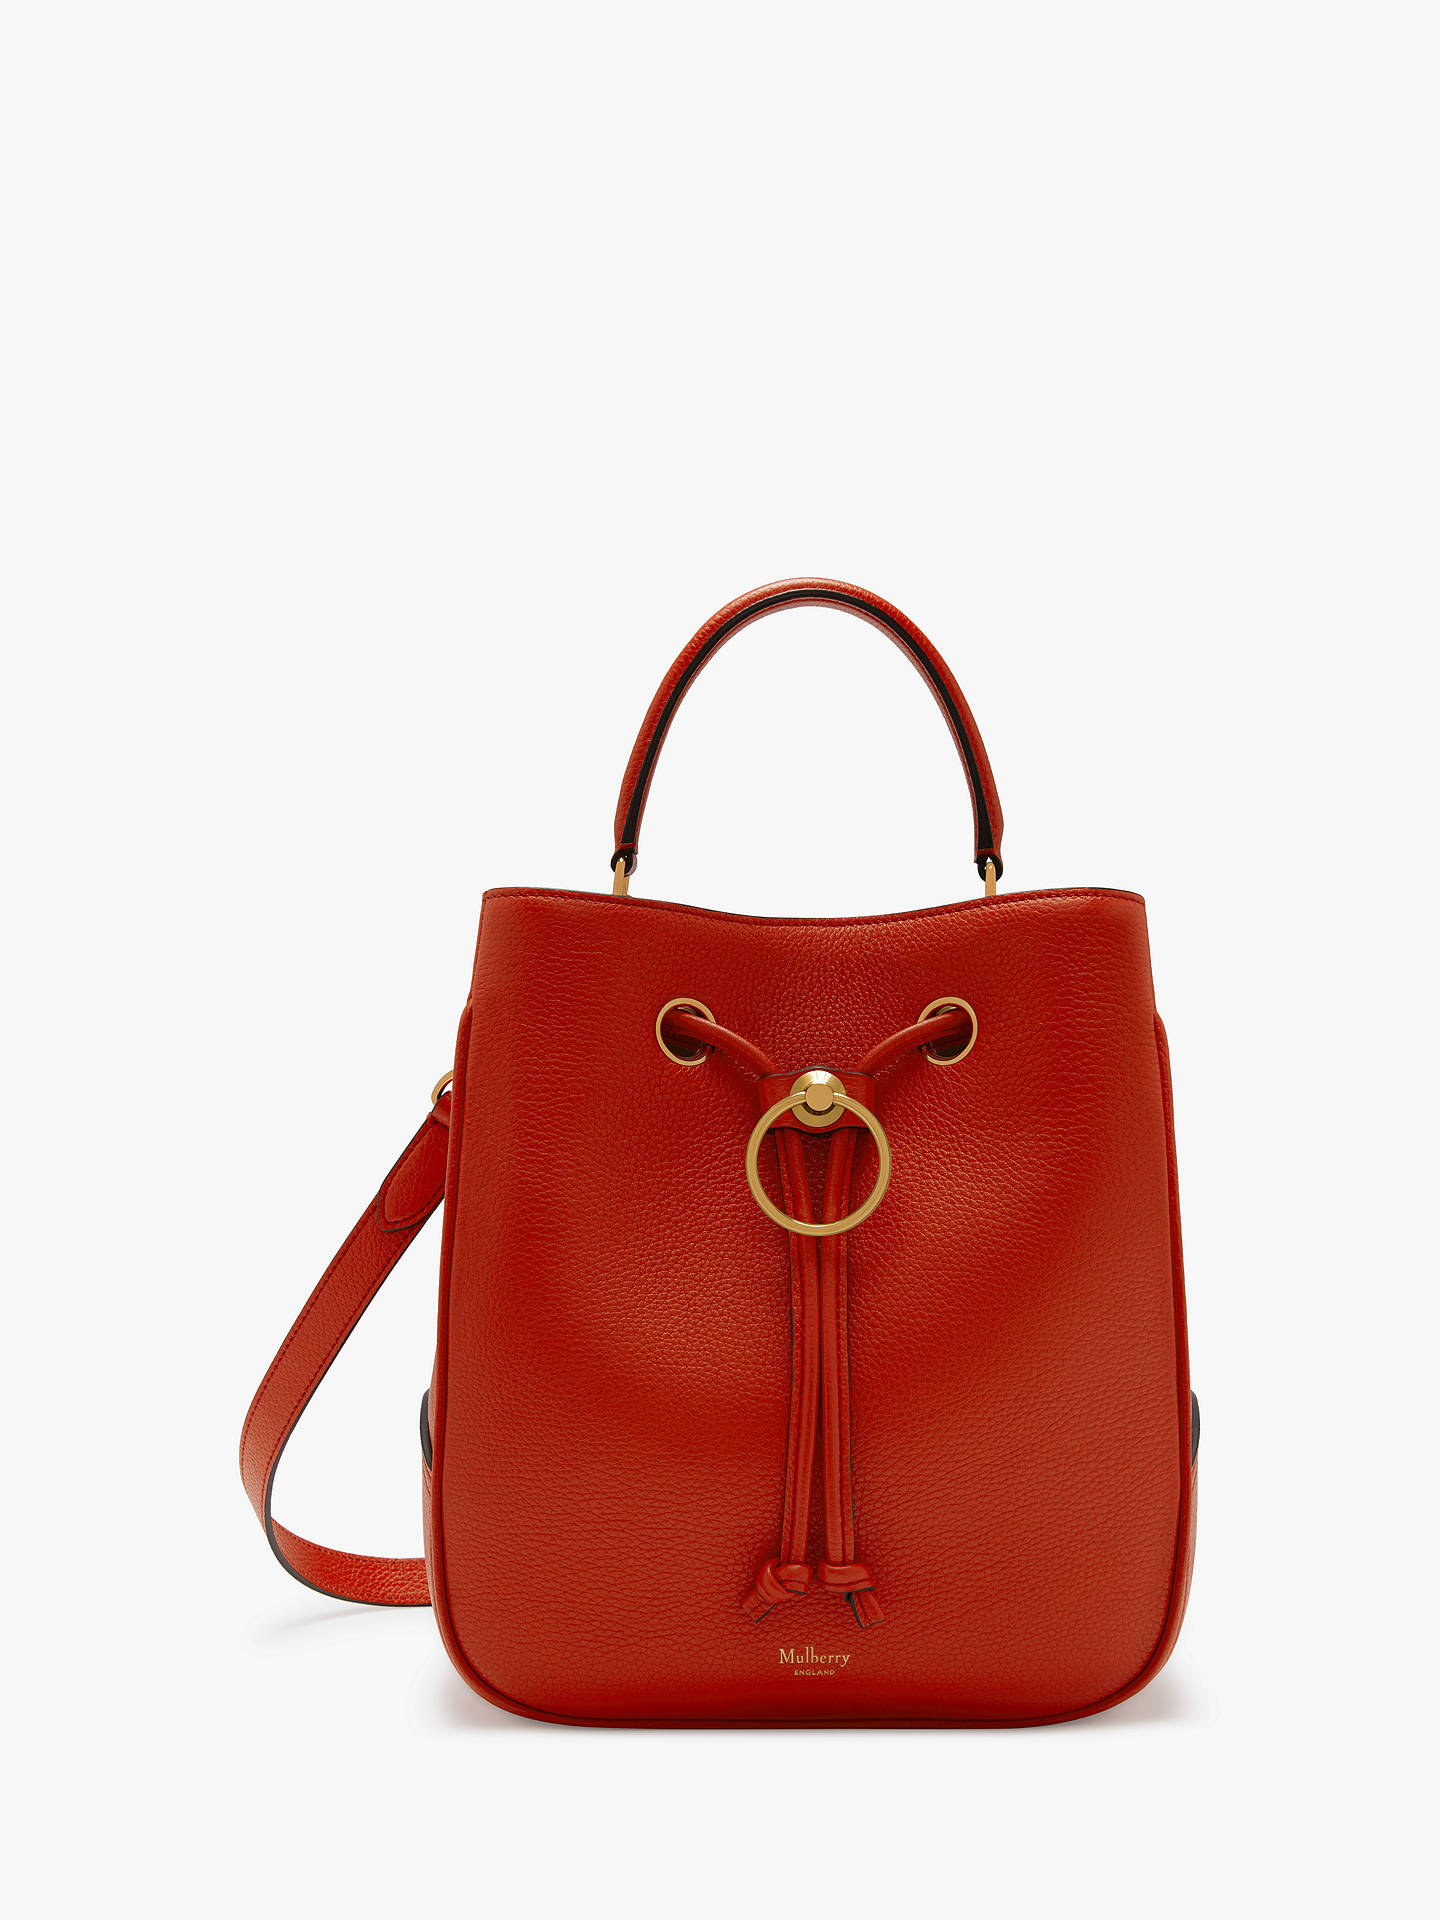 Mulberry Large Hampstead Classic Grain Leather Shoulder Bag Hibiscus Red Online At Johnlewis